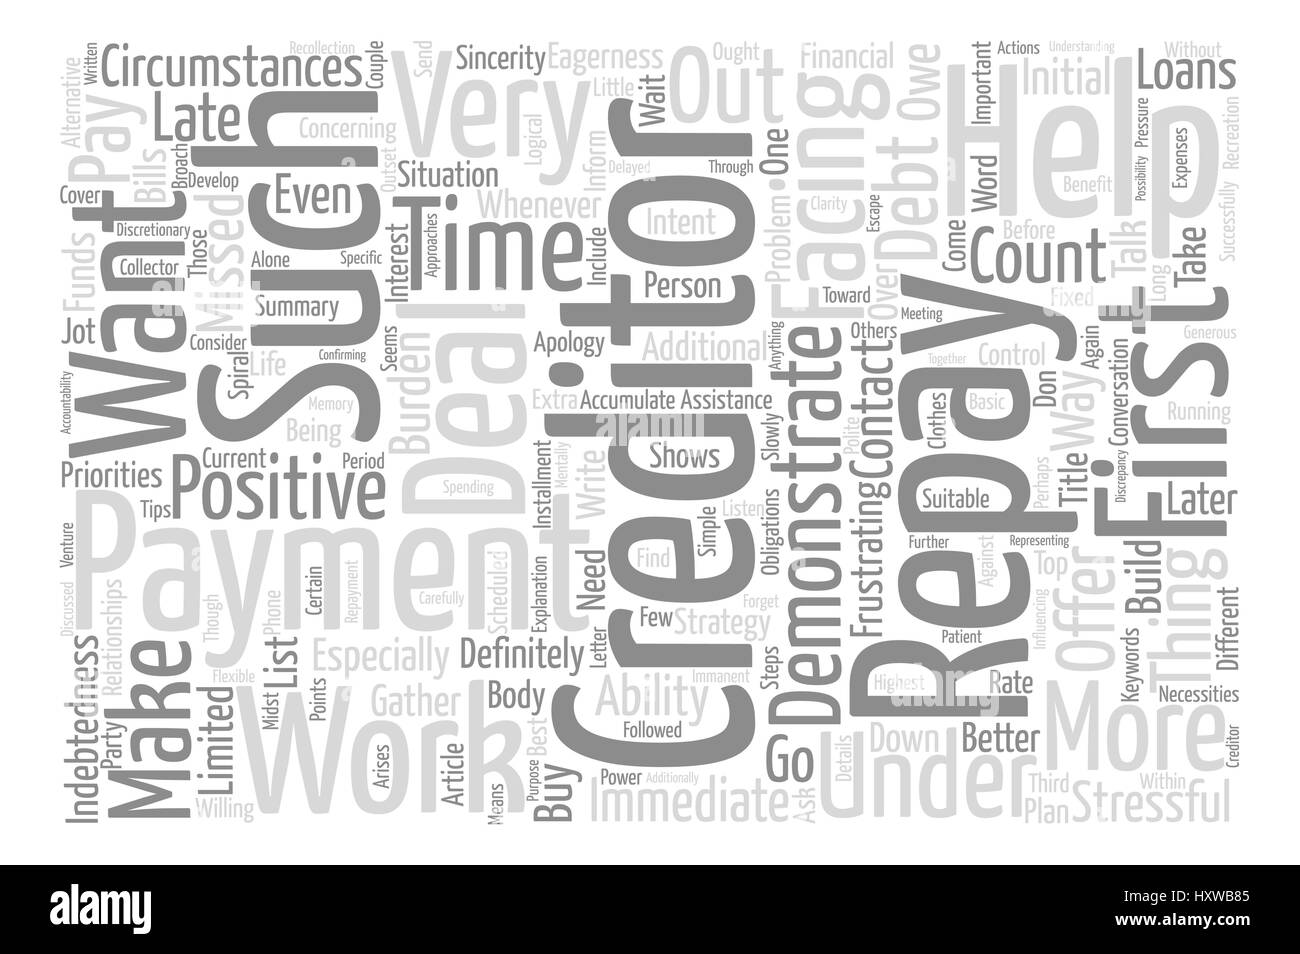 How To Work With Creditors Successfully Word Cloud Concept Text Background - Stock Image